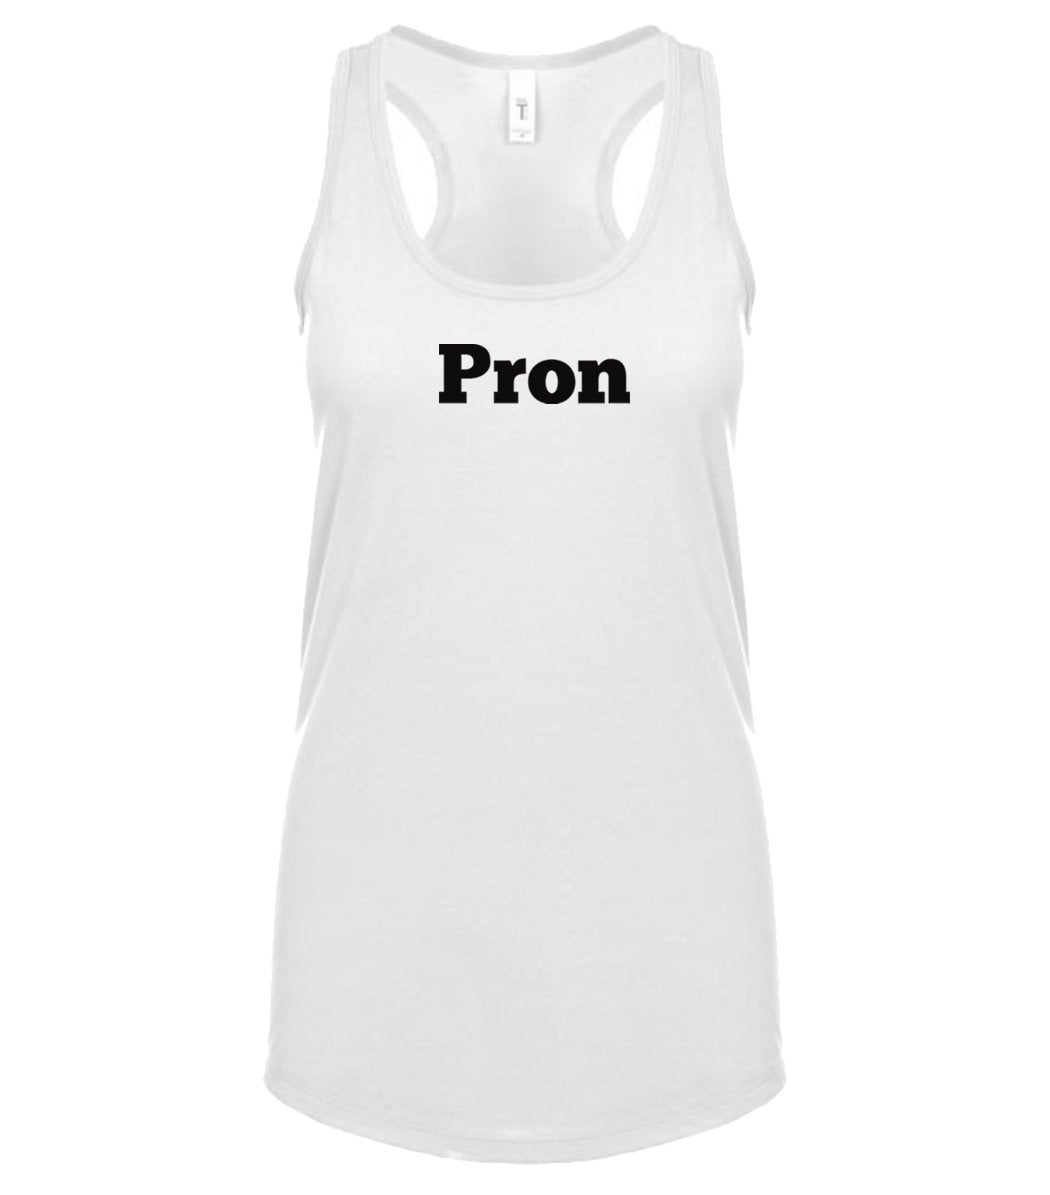 white PRON racerback tank top for women